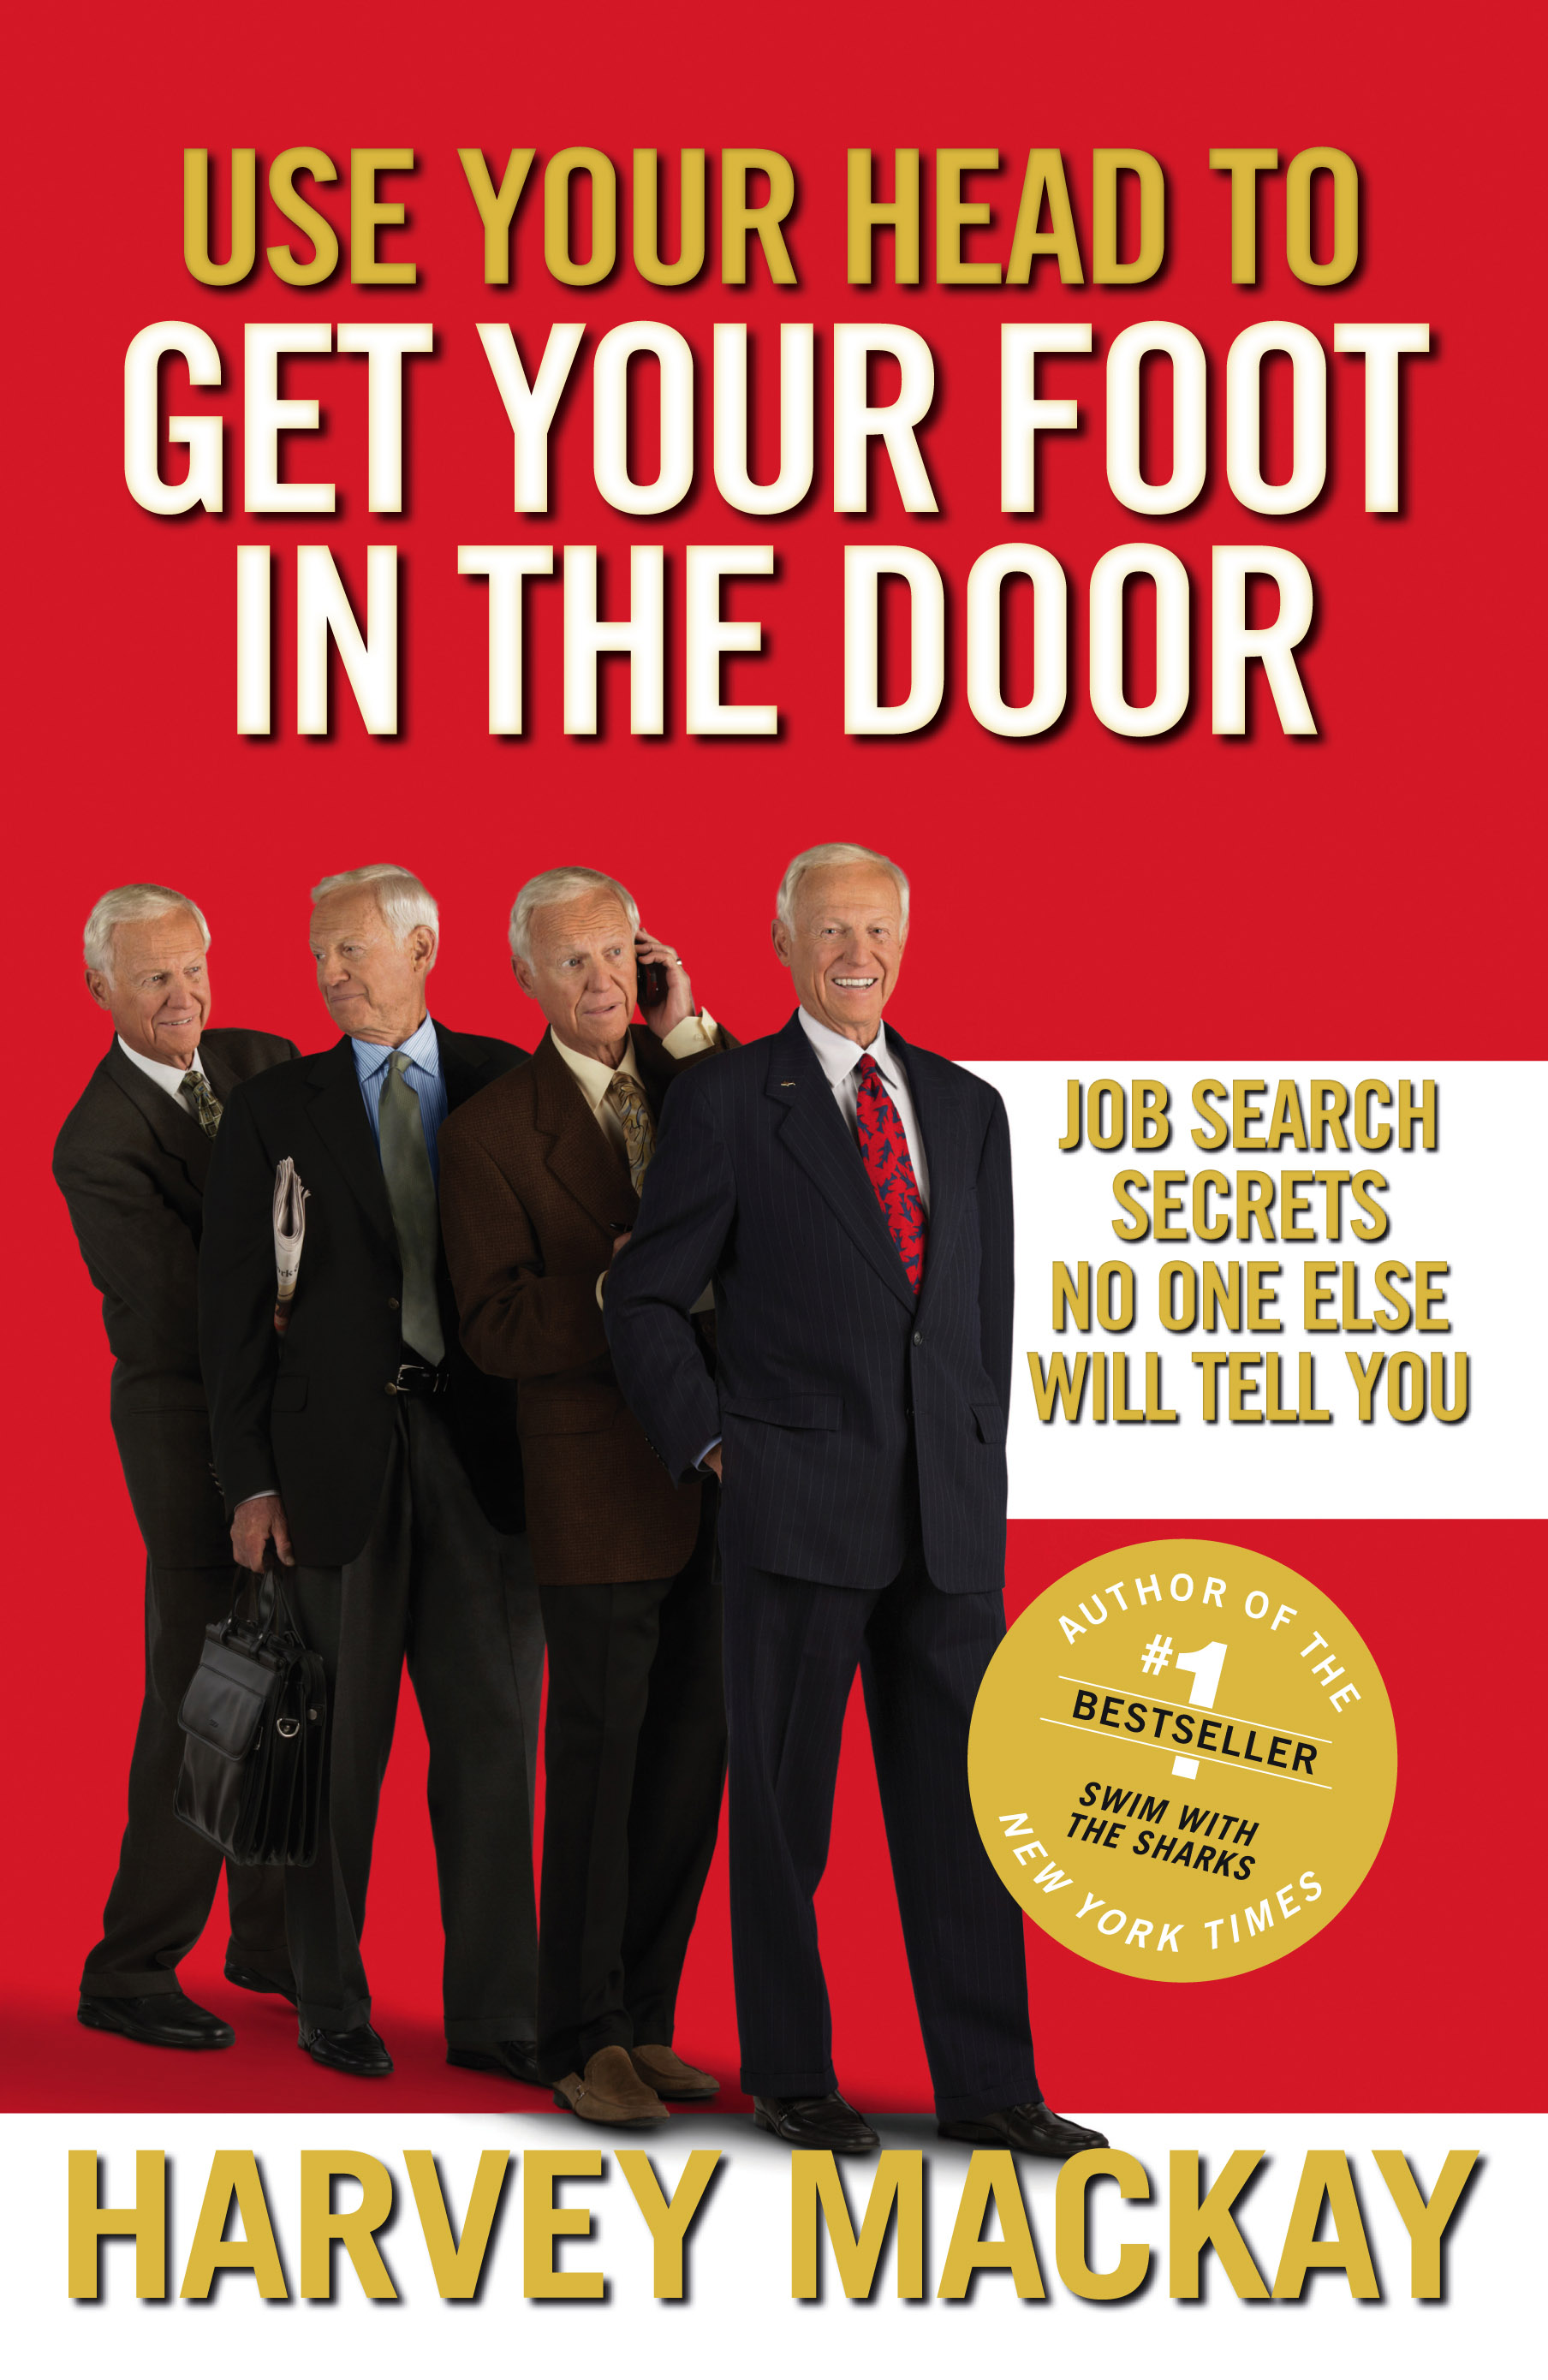 Use Your Head to Get Your Foot in the Door Job Search Secrets No One Else Will Tell You